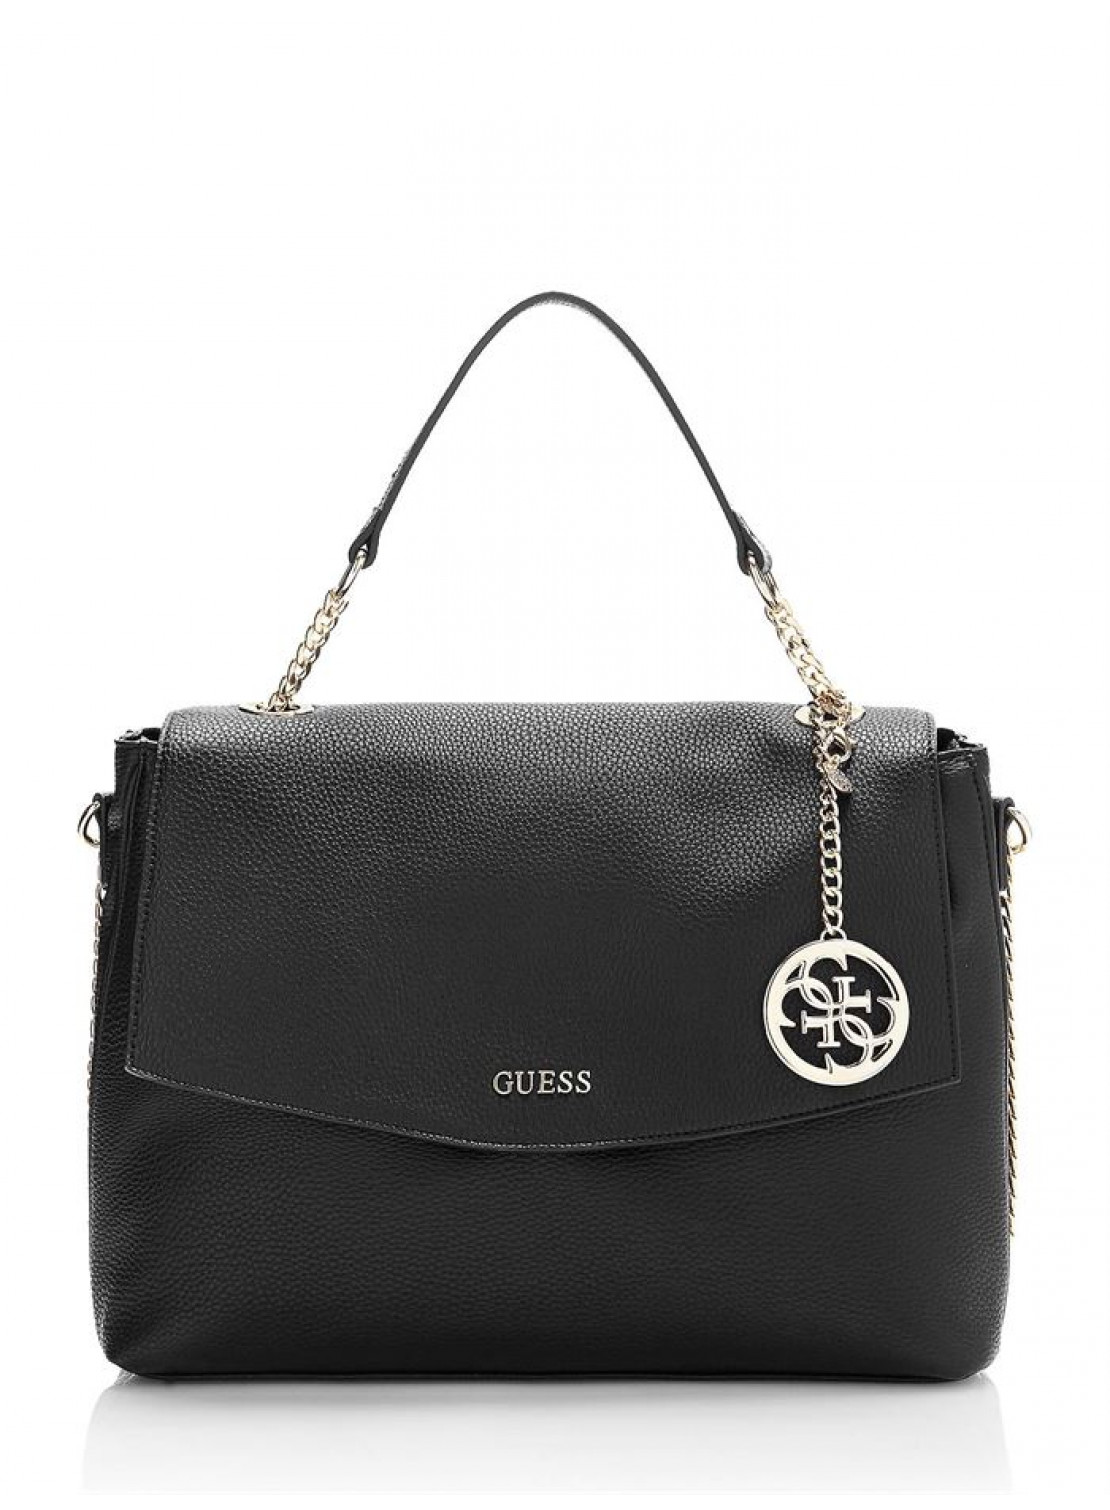 BOLSO GUESS ISABEAU TOP HANDLE FLAP BLACK